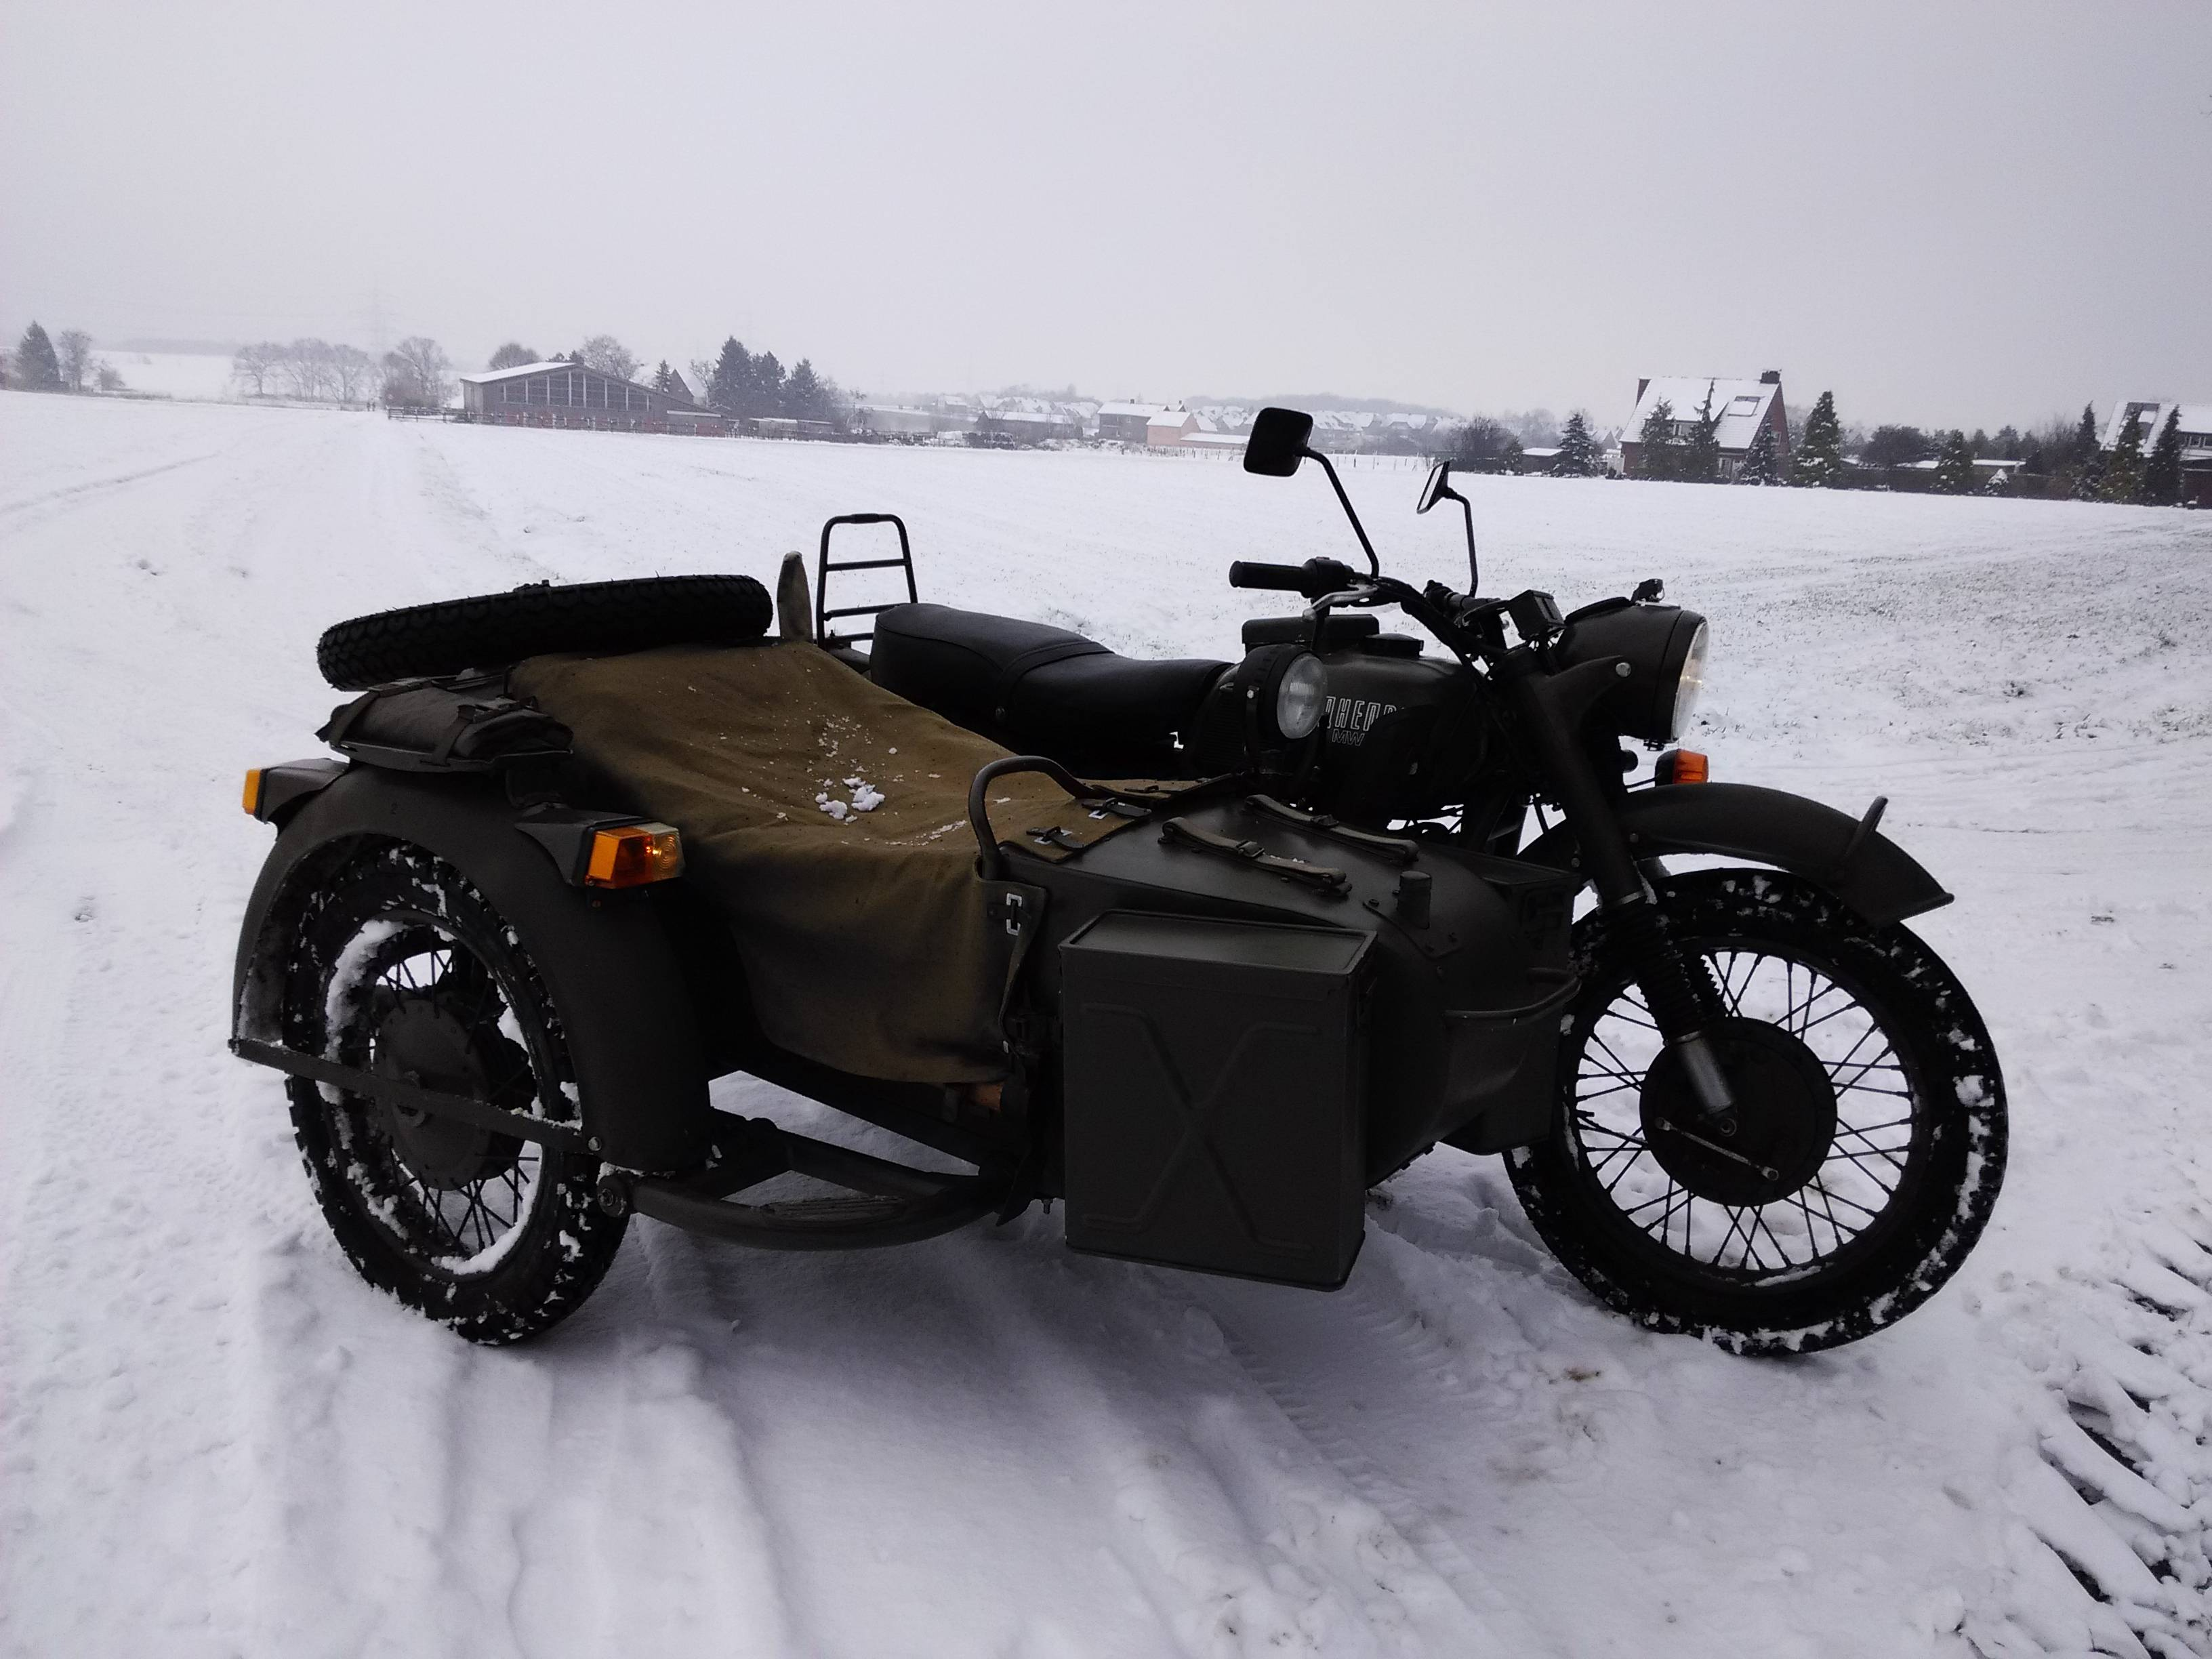 Ural M-63 with sidecar 1974 images #127430